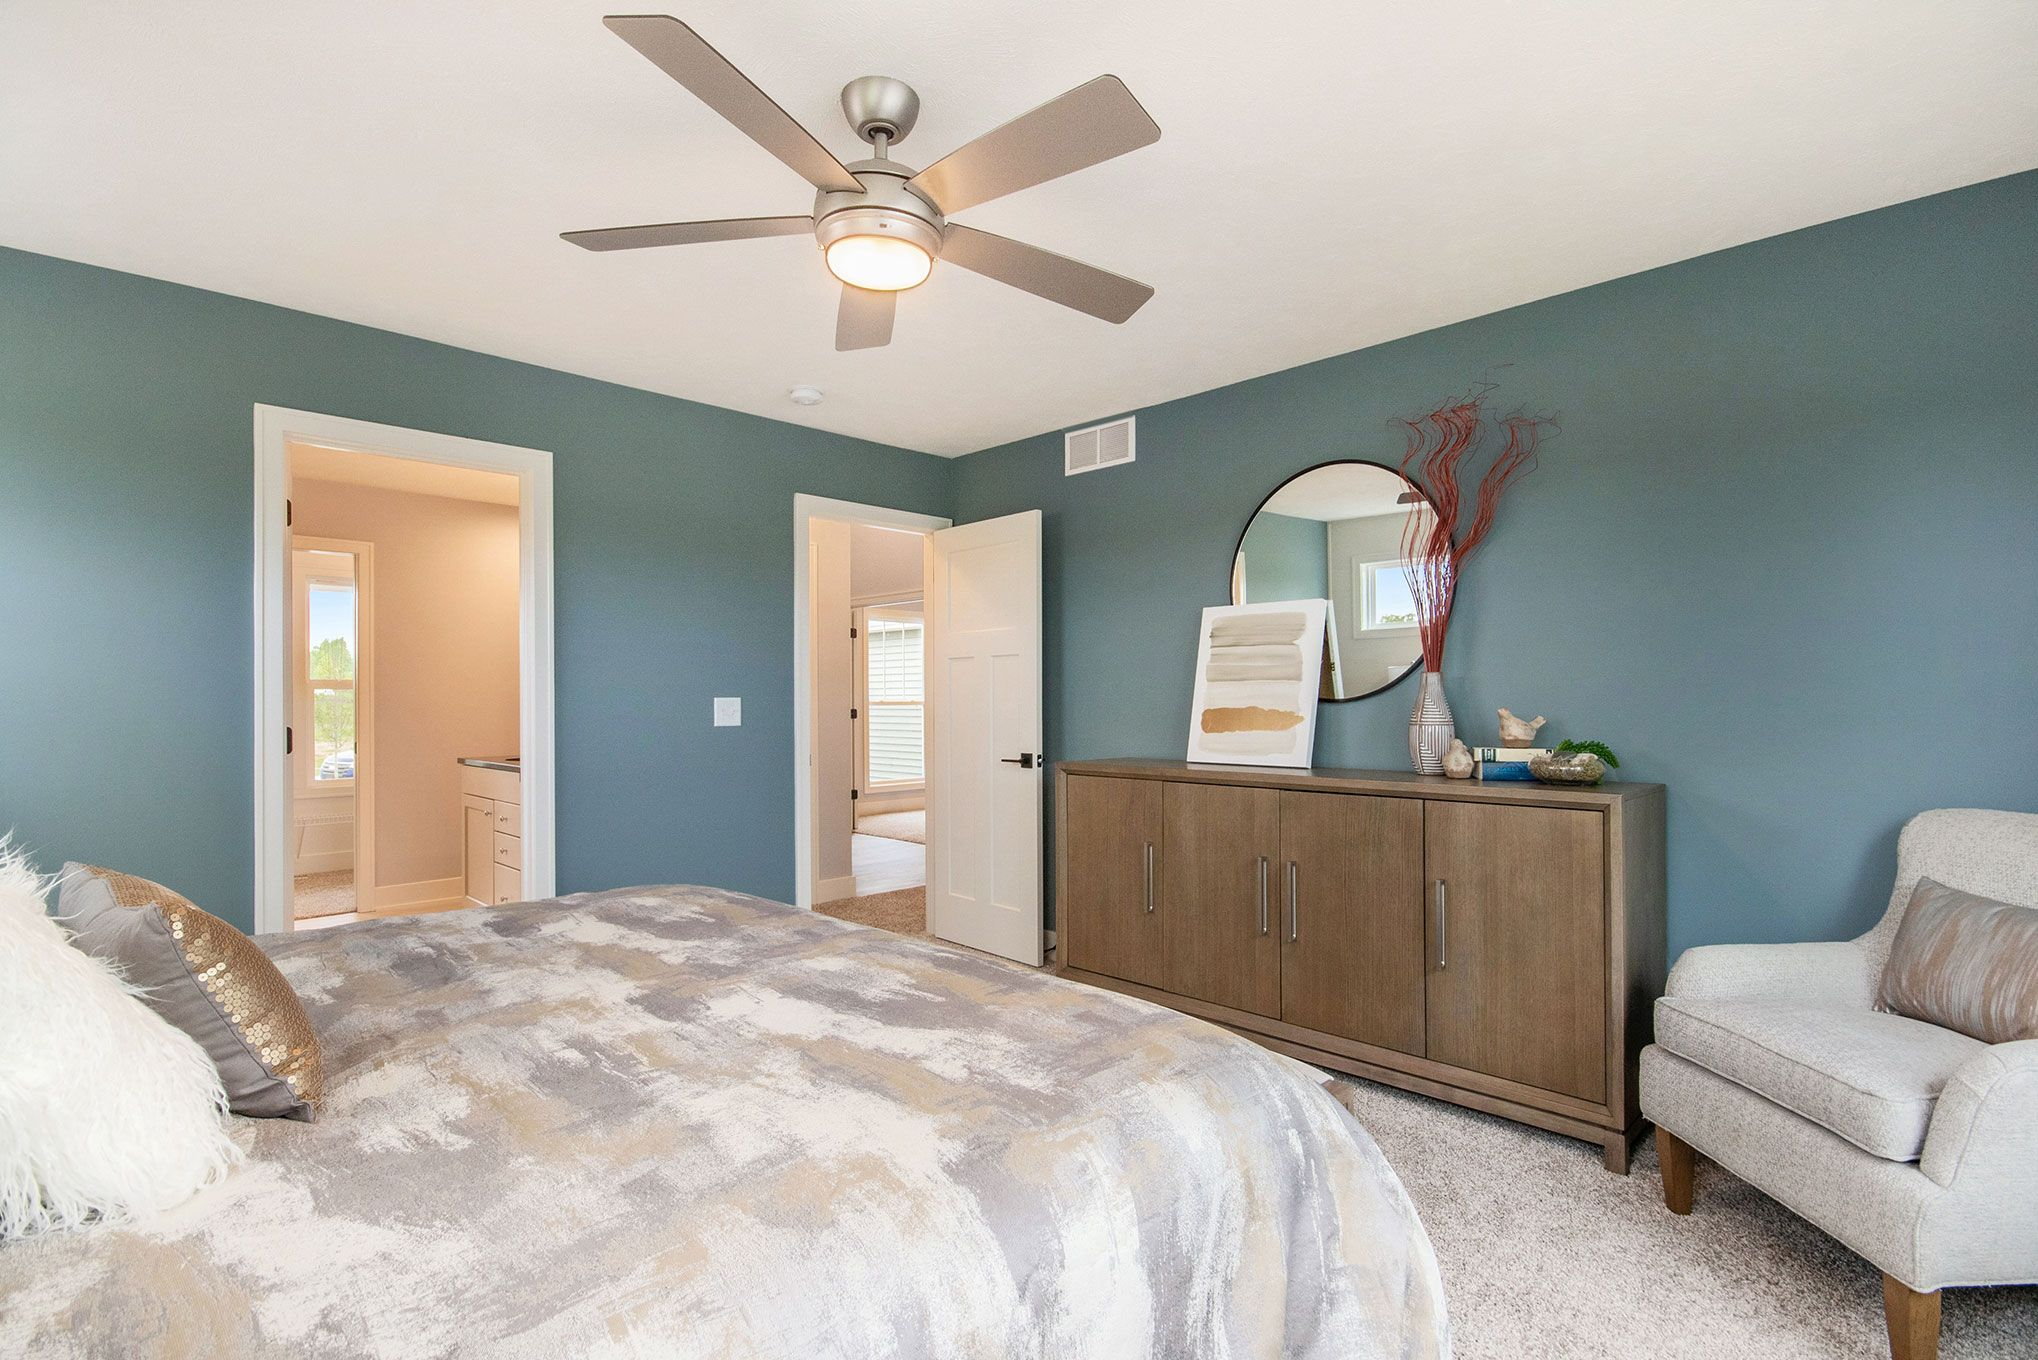 Bedroom featured in The Hearthside By Eastbrook Homes Inc. in Grand Rapids, MI